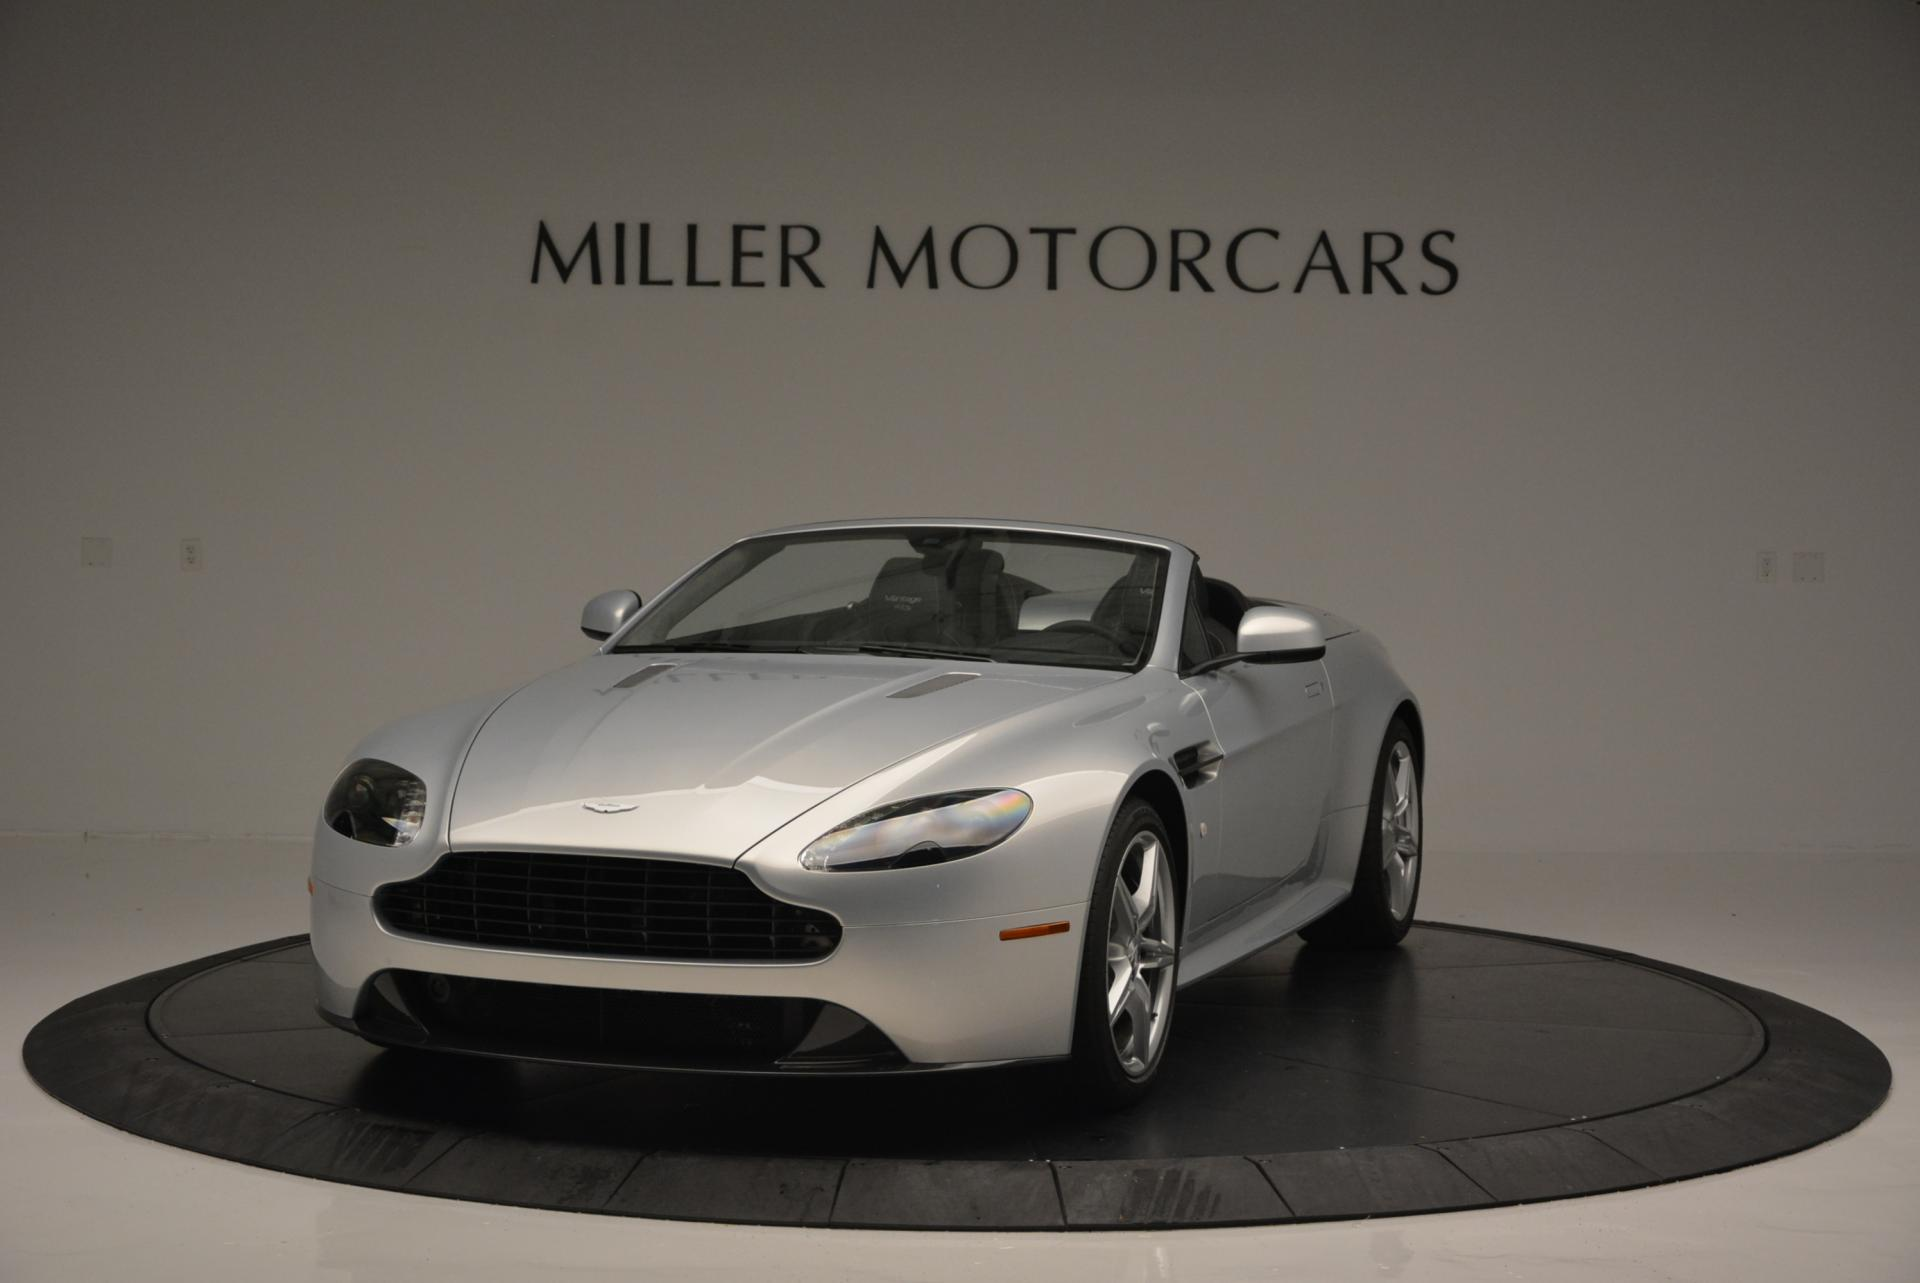 New 2016 Aston Martin V8 Vantage GTS Roadster for sale Sold at Pagani of Greenwich in Greenwich CT 06830 1